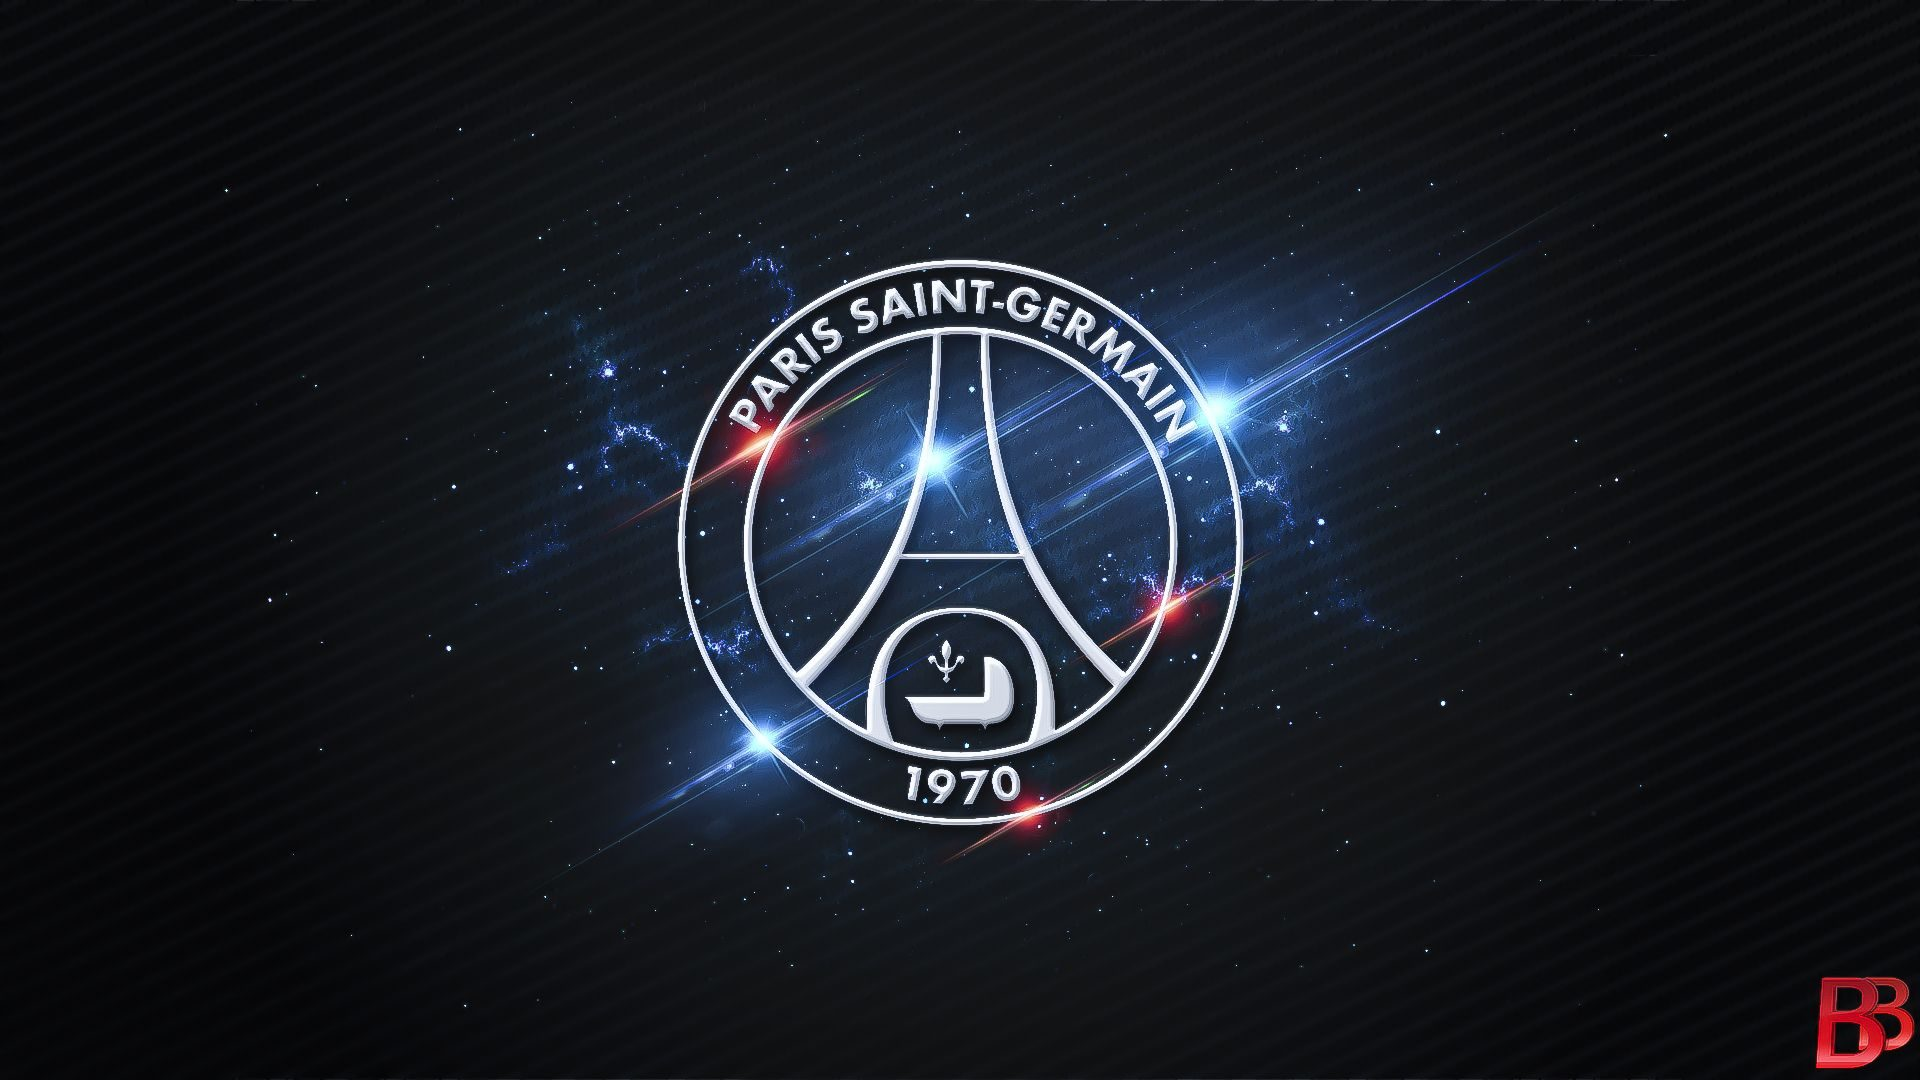 1920x1080 - Paris Saint-Germain F.C. Wallpapers 29